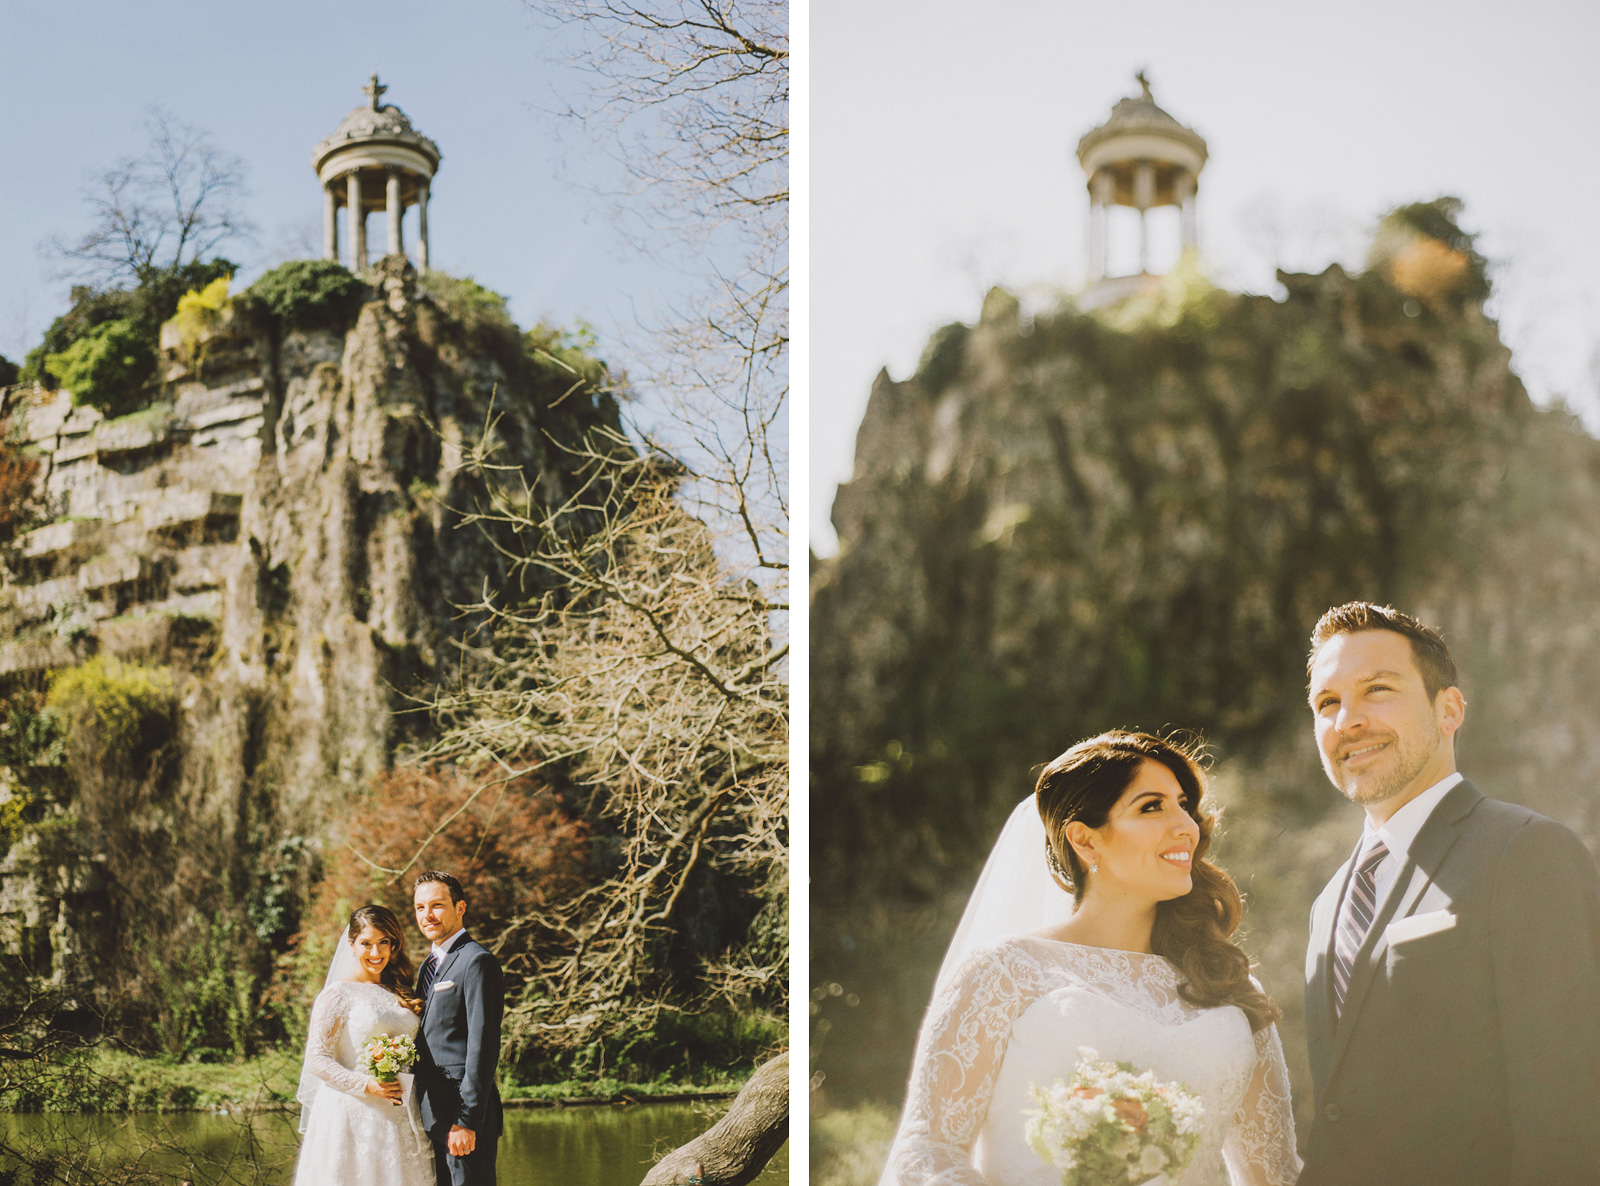 Bride and Groom at their ceremony site | Springtime Paris Elopement at Parc des Buttes Chaumont